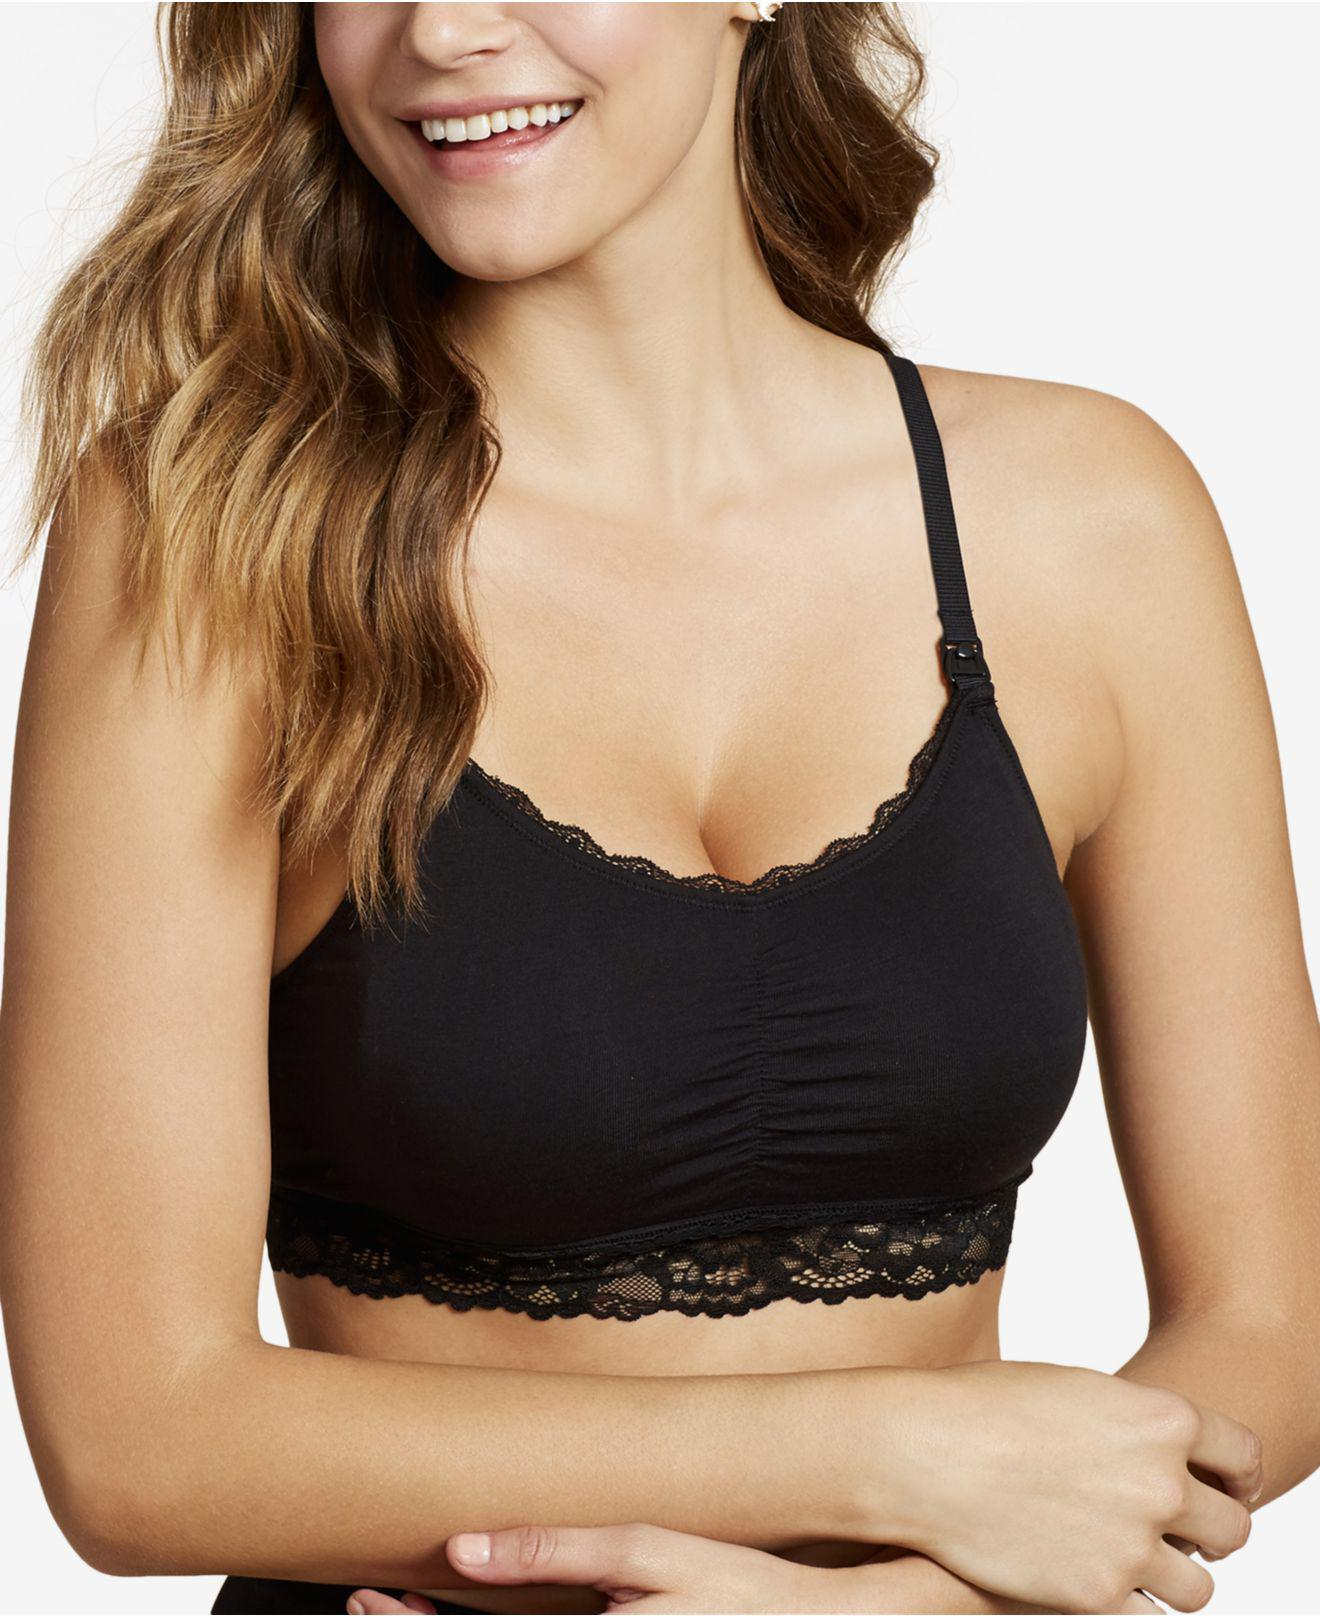 534292c062ee9 Lyst - Jessica Simpson Wireless Clip-down Nursing Bra in Black